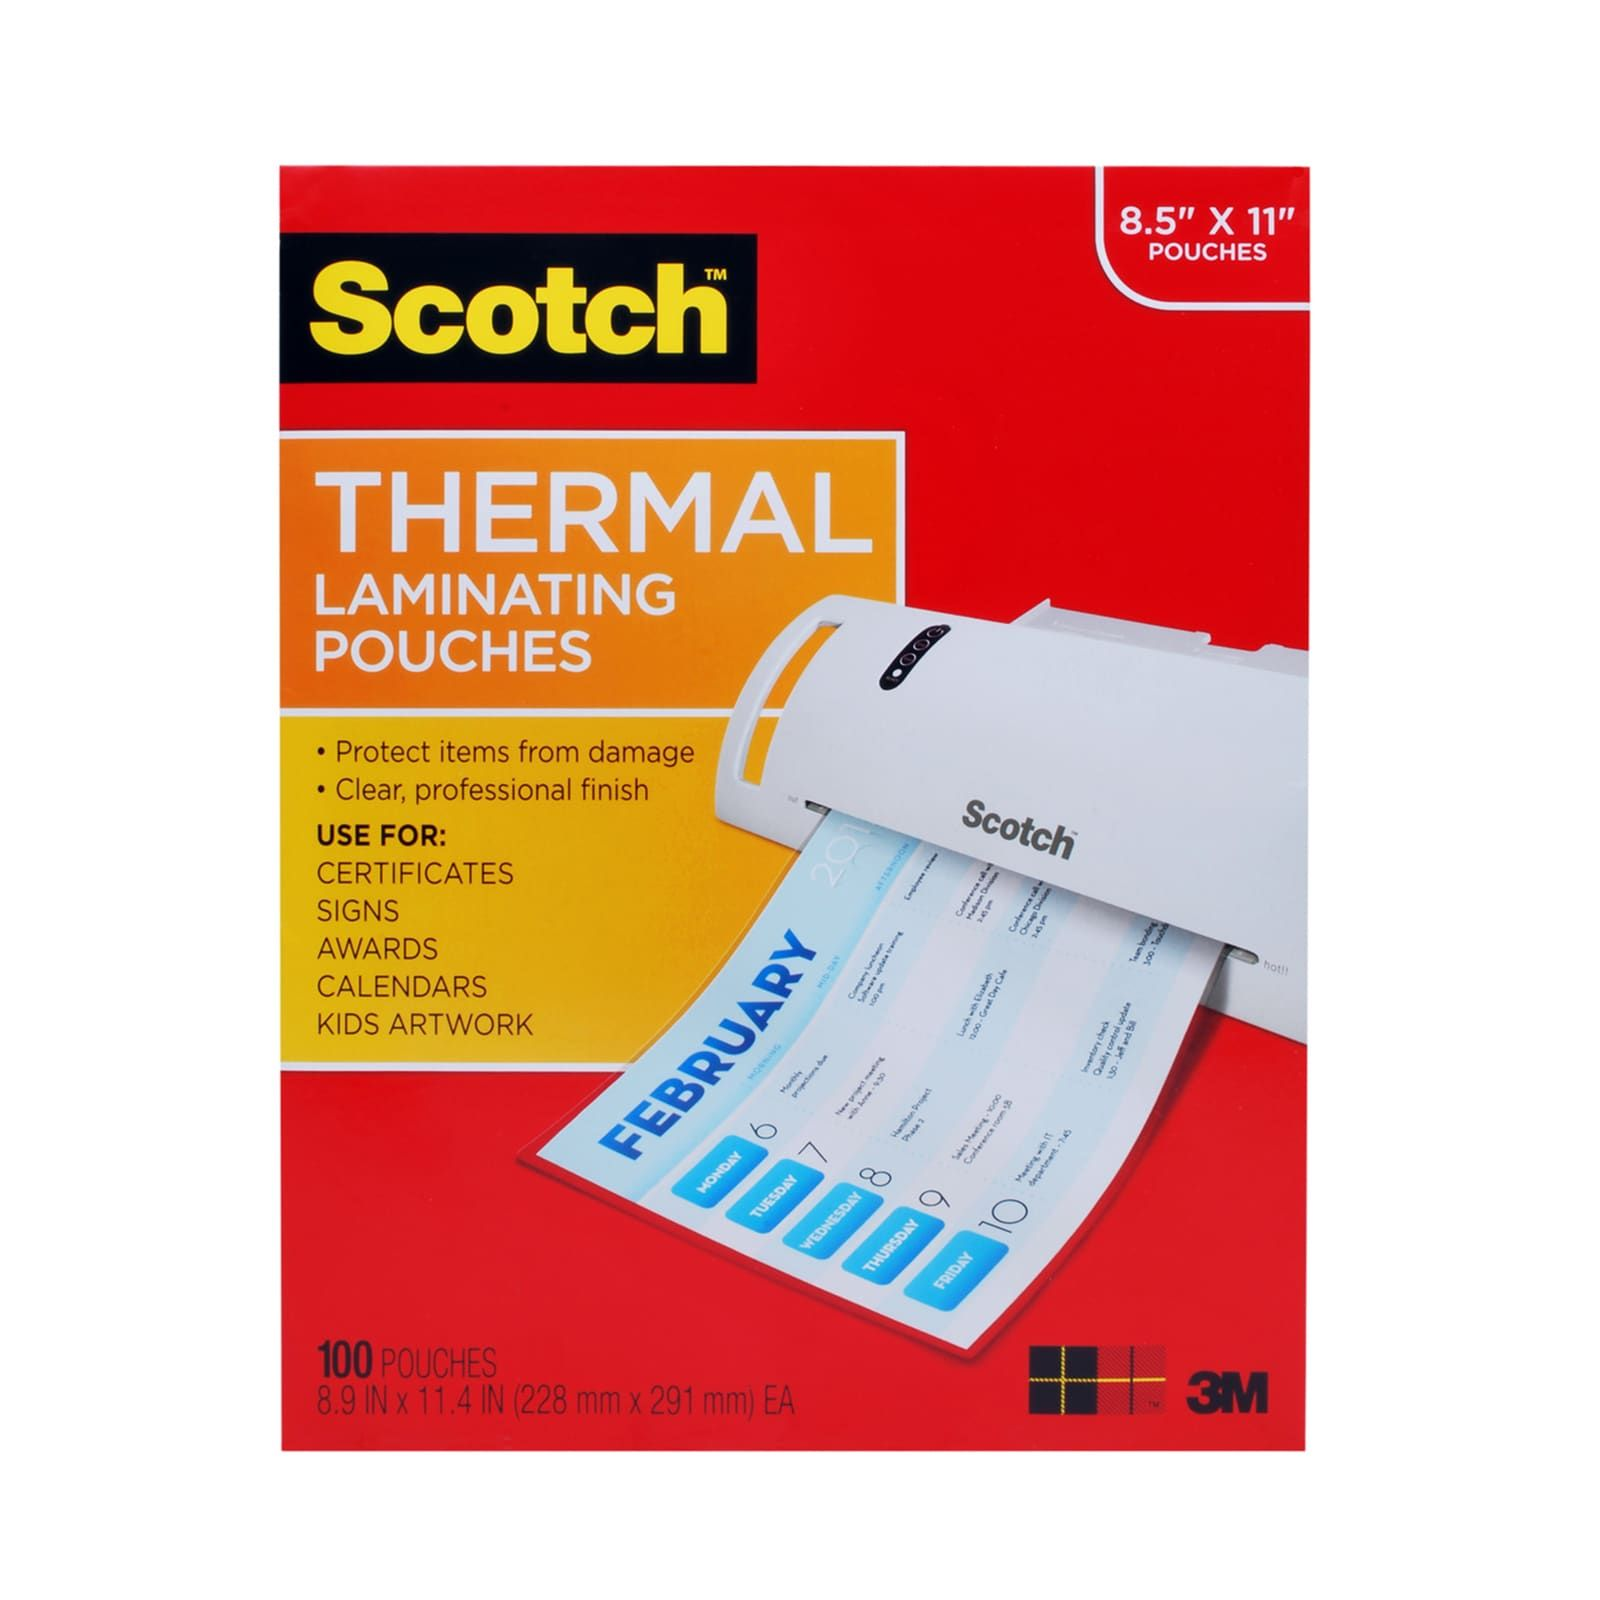 Scotch Thermal Laminating Pouches With Images